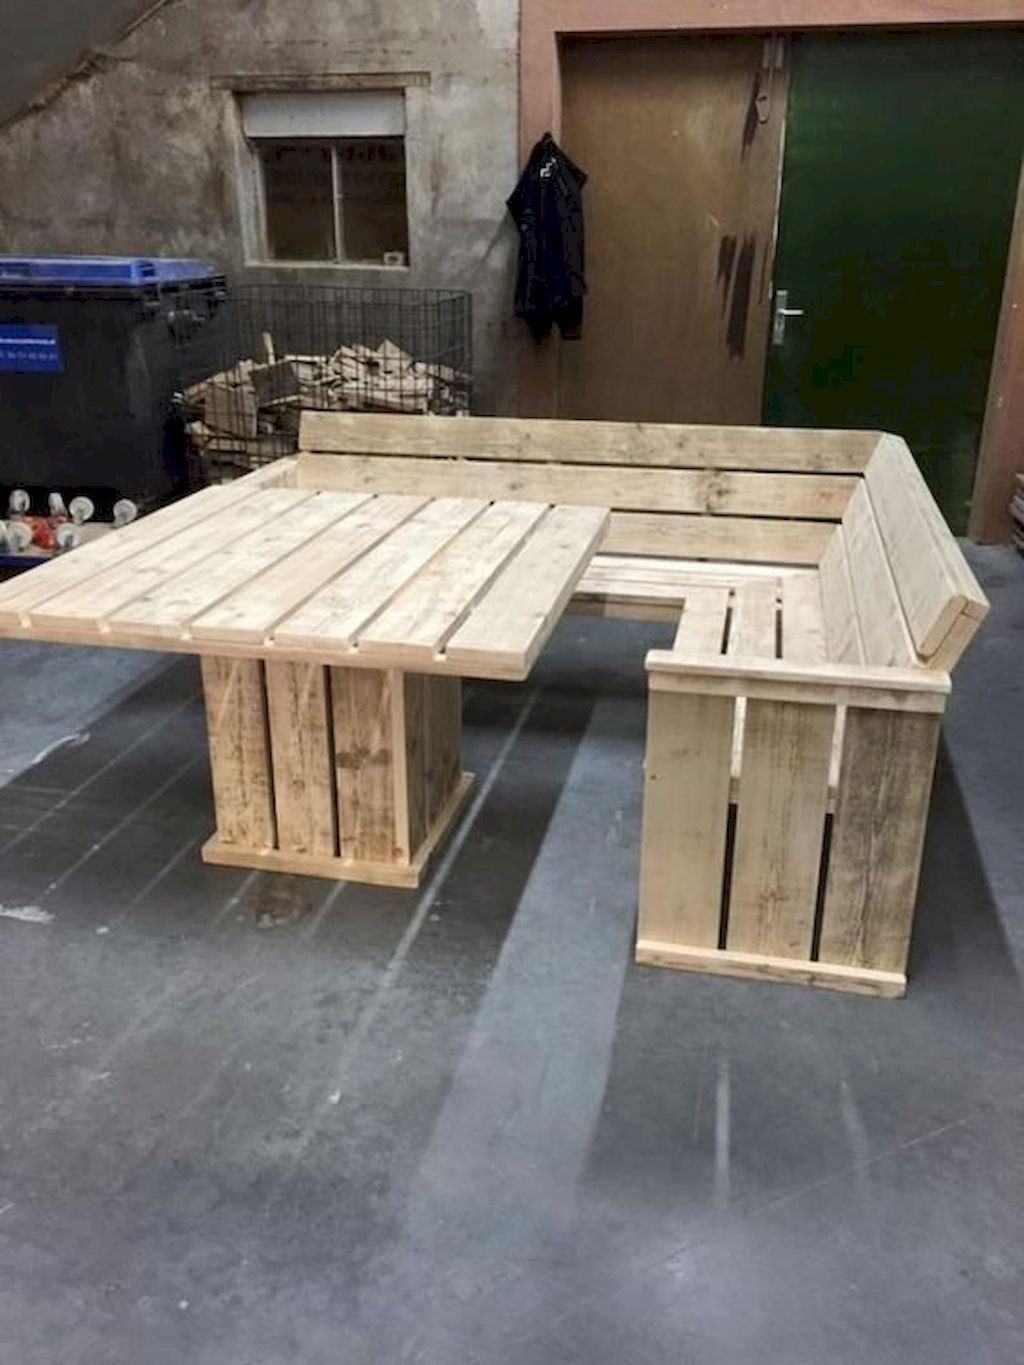 Faire Une Table De Jardin Pin By Suzanne Caldwell On Pallets In 2018 Pinterest Mobilier